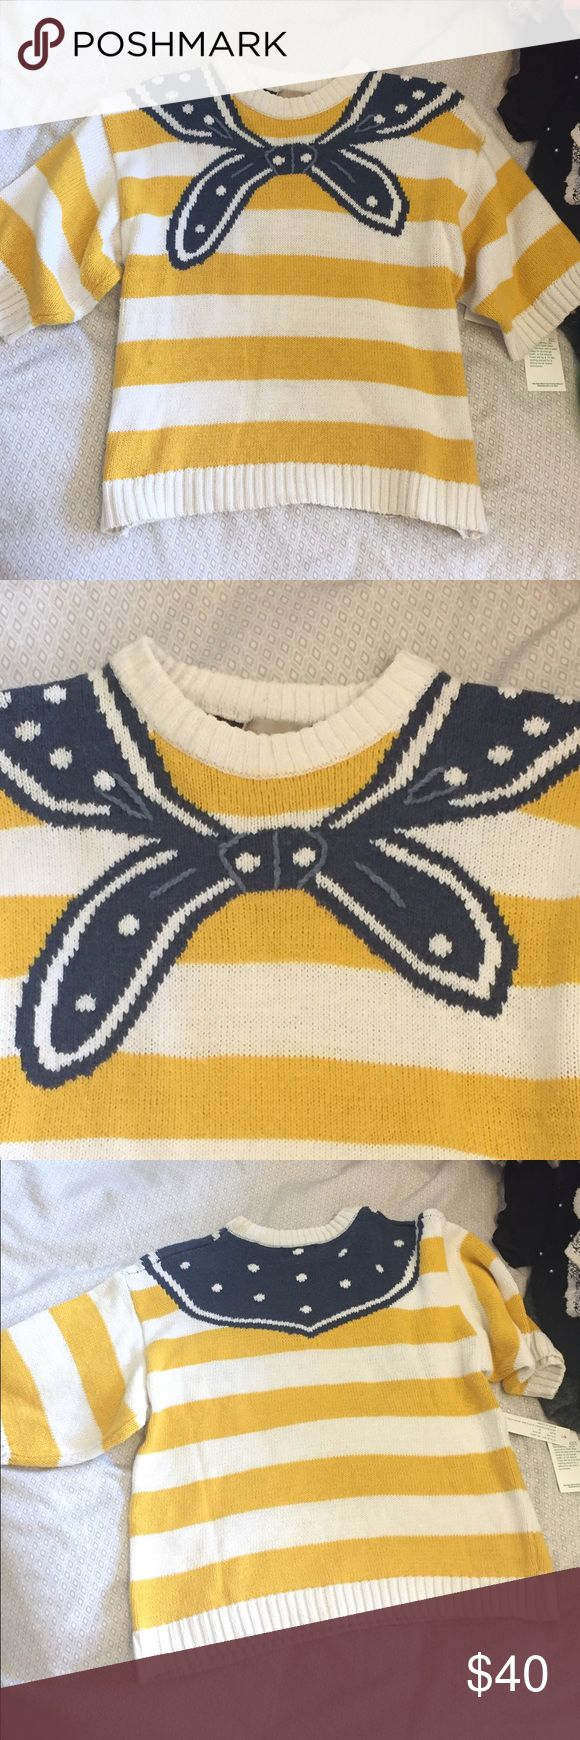 Awesome vintage preppy sweater I feel like I'd see Zoey Deschanel in this... great vintage piece. Shows some wear on neckline. Vintage Sweaters Crew & Scoop Necks